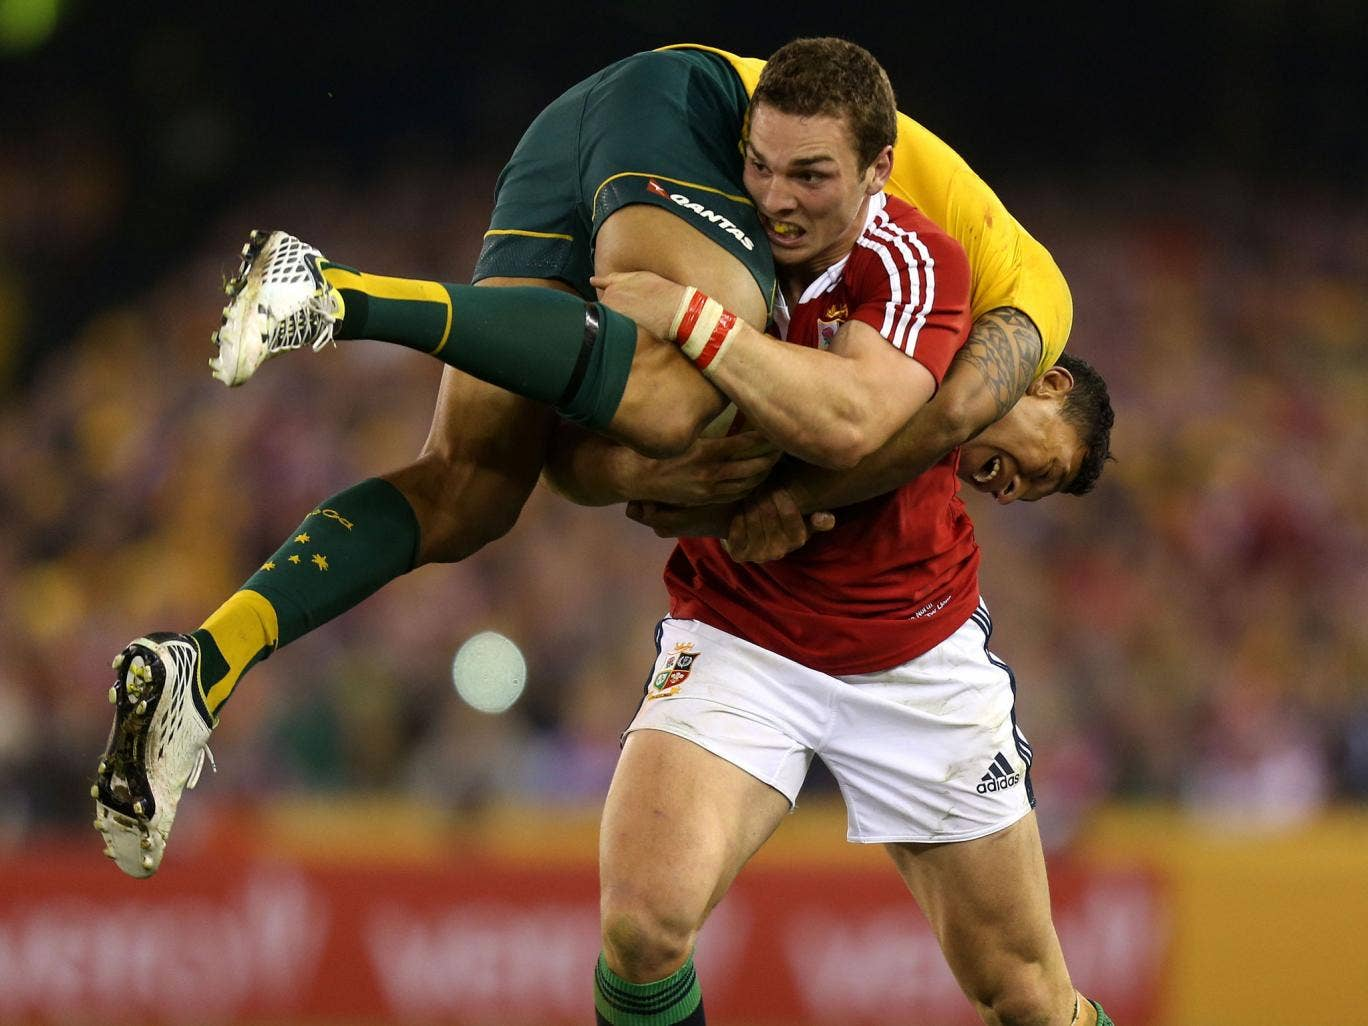 The Lions need more of the spirit shown by George North